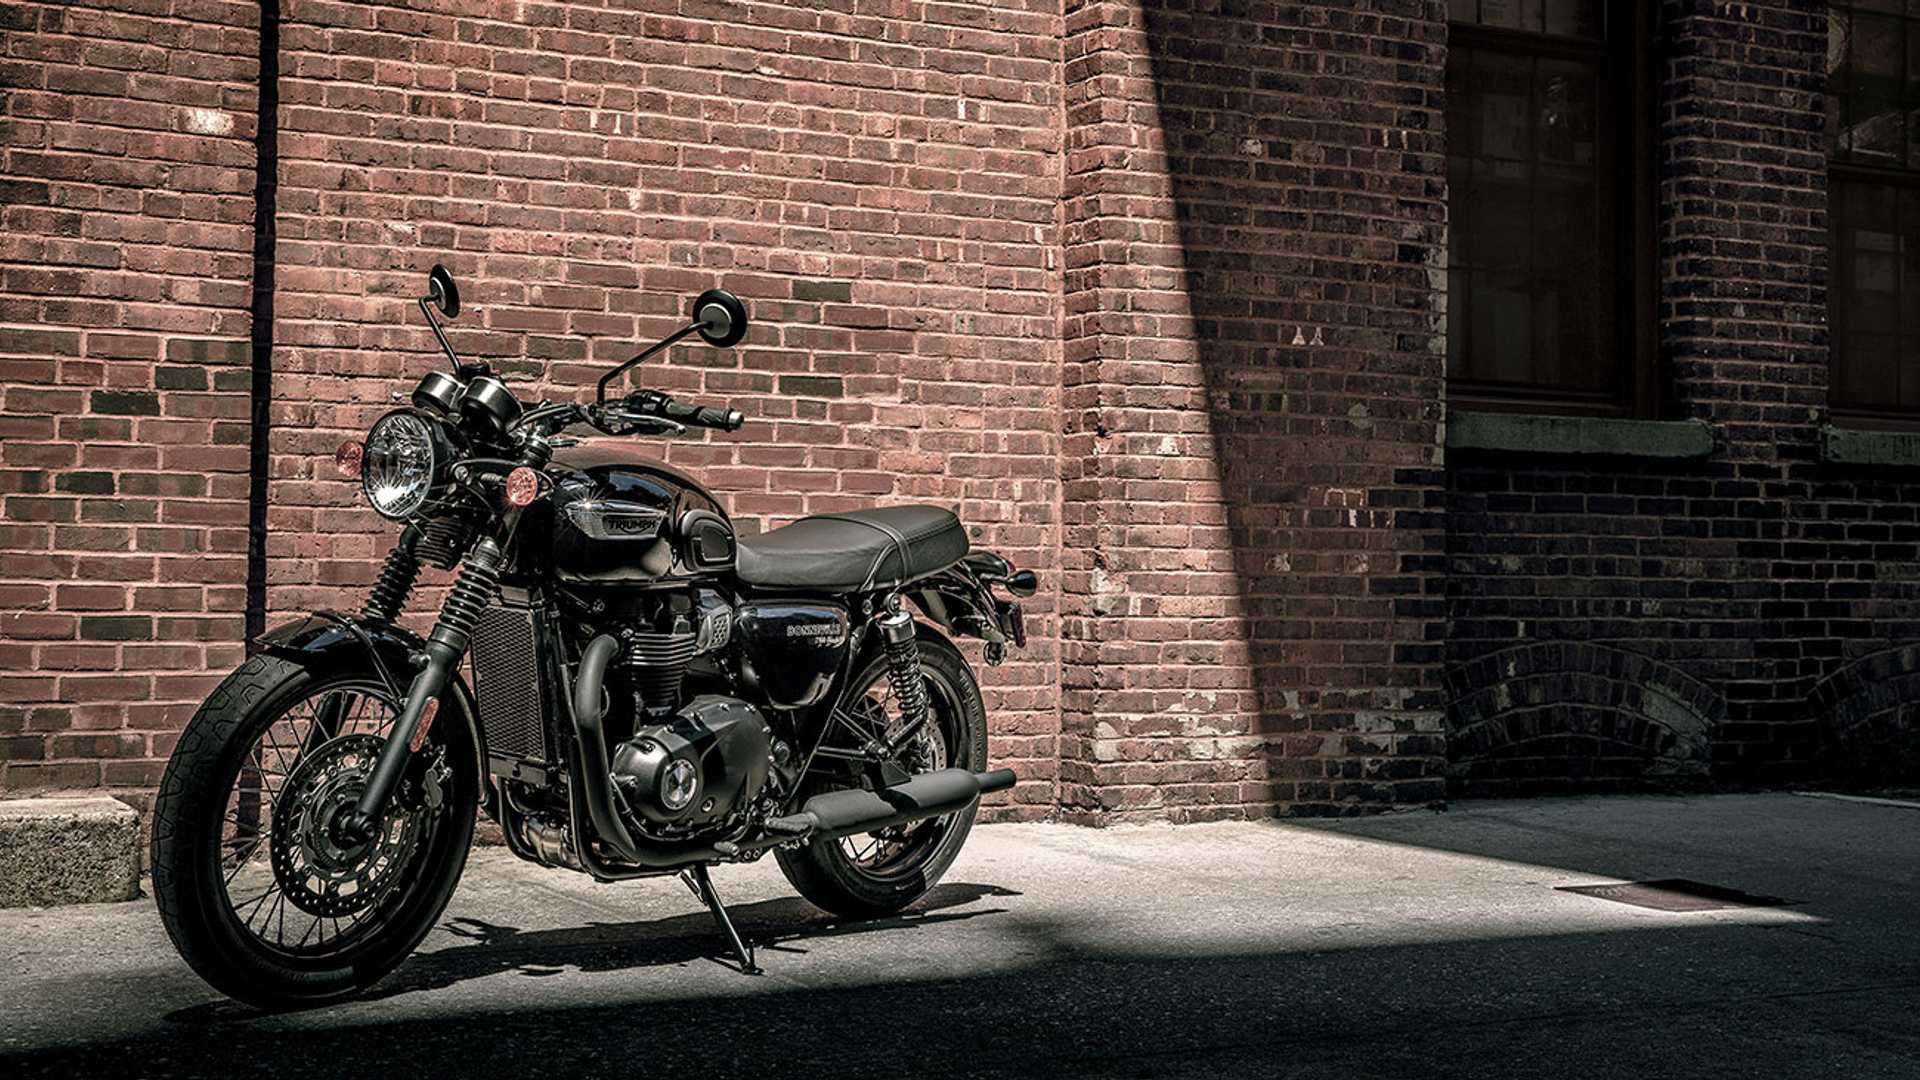 The Triumph-Bajaj Motorcycles To Be Marketed As Triumphs For 2022